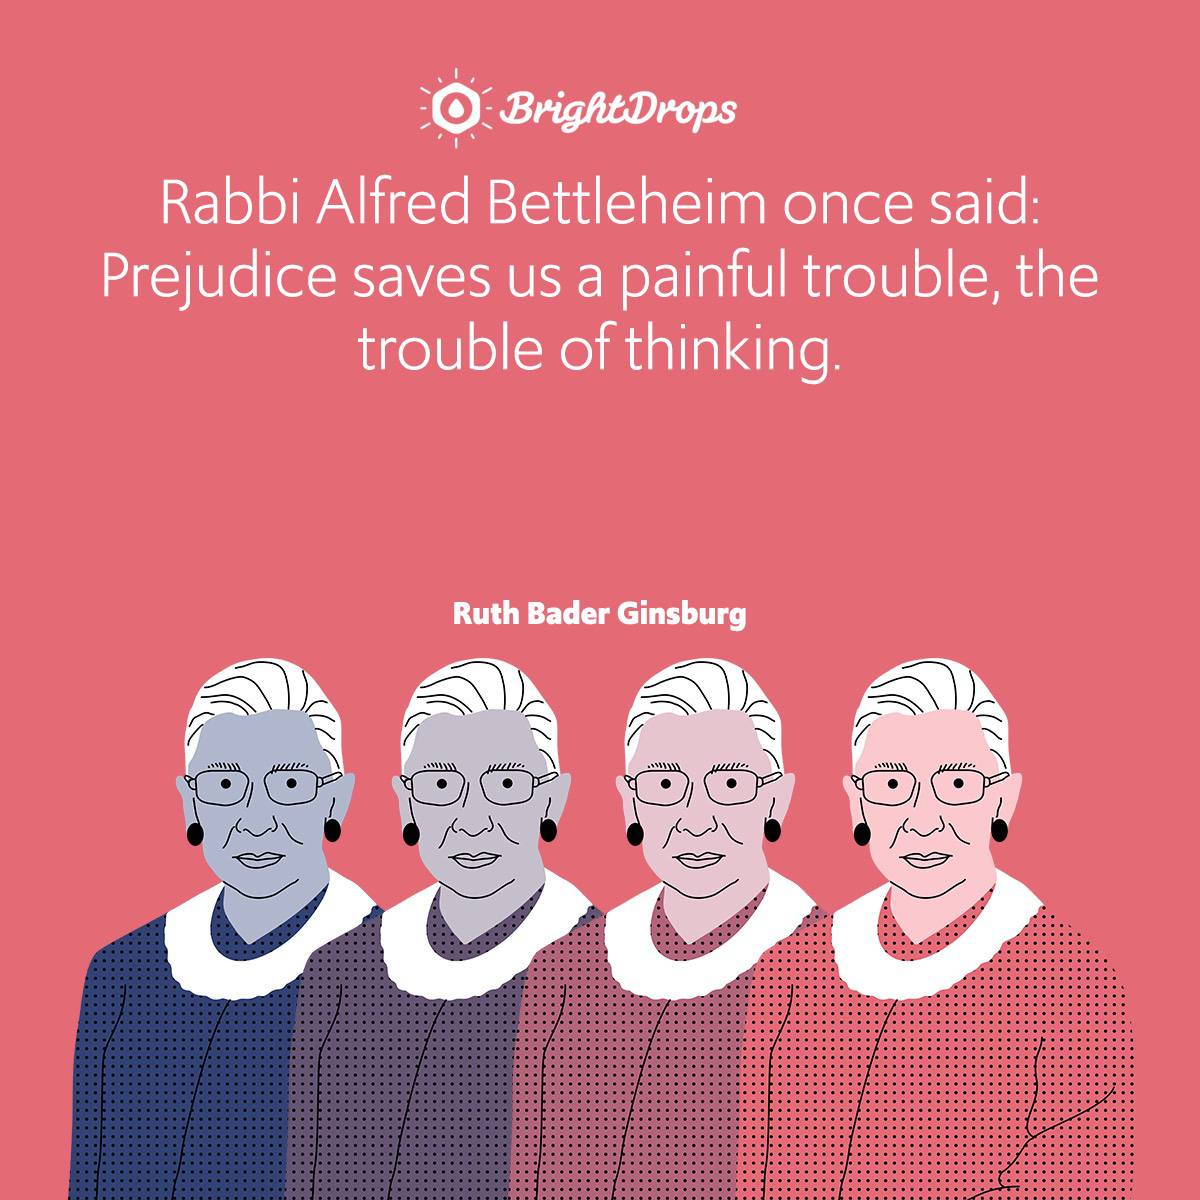 Rabbi Alfred Bettleheim once said: Prejudice saves us a painful trouble, the trouble of thinking.